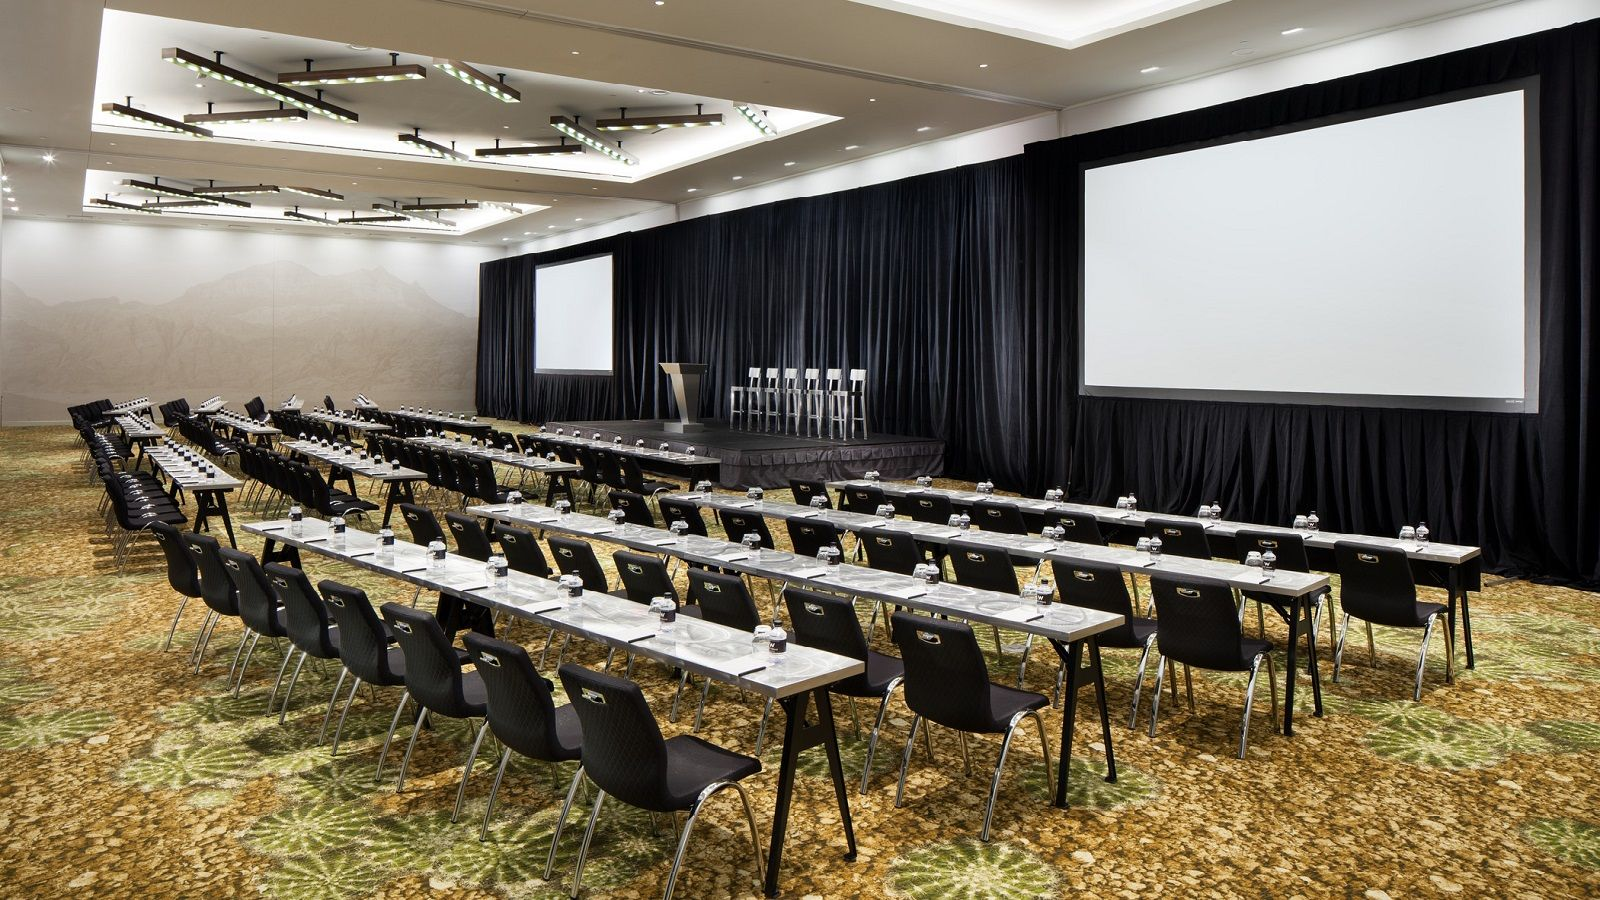 Great Room Classroom Set Up - Social Events W Las Vegas